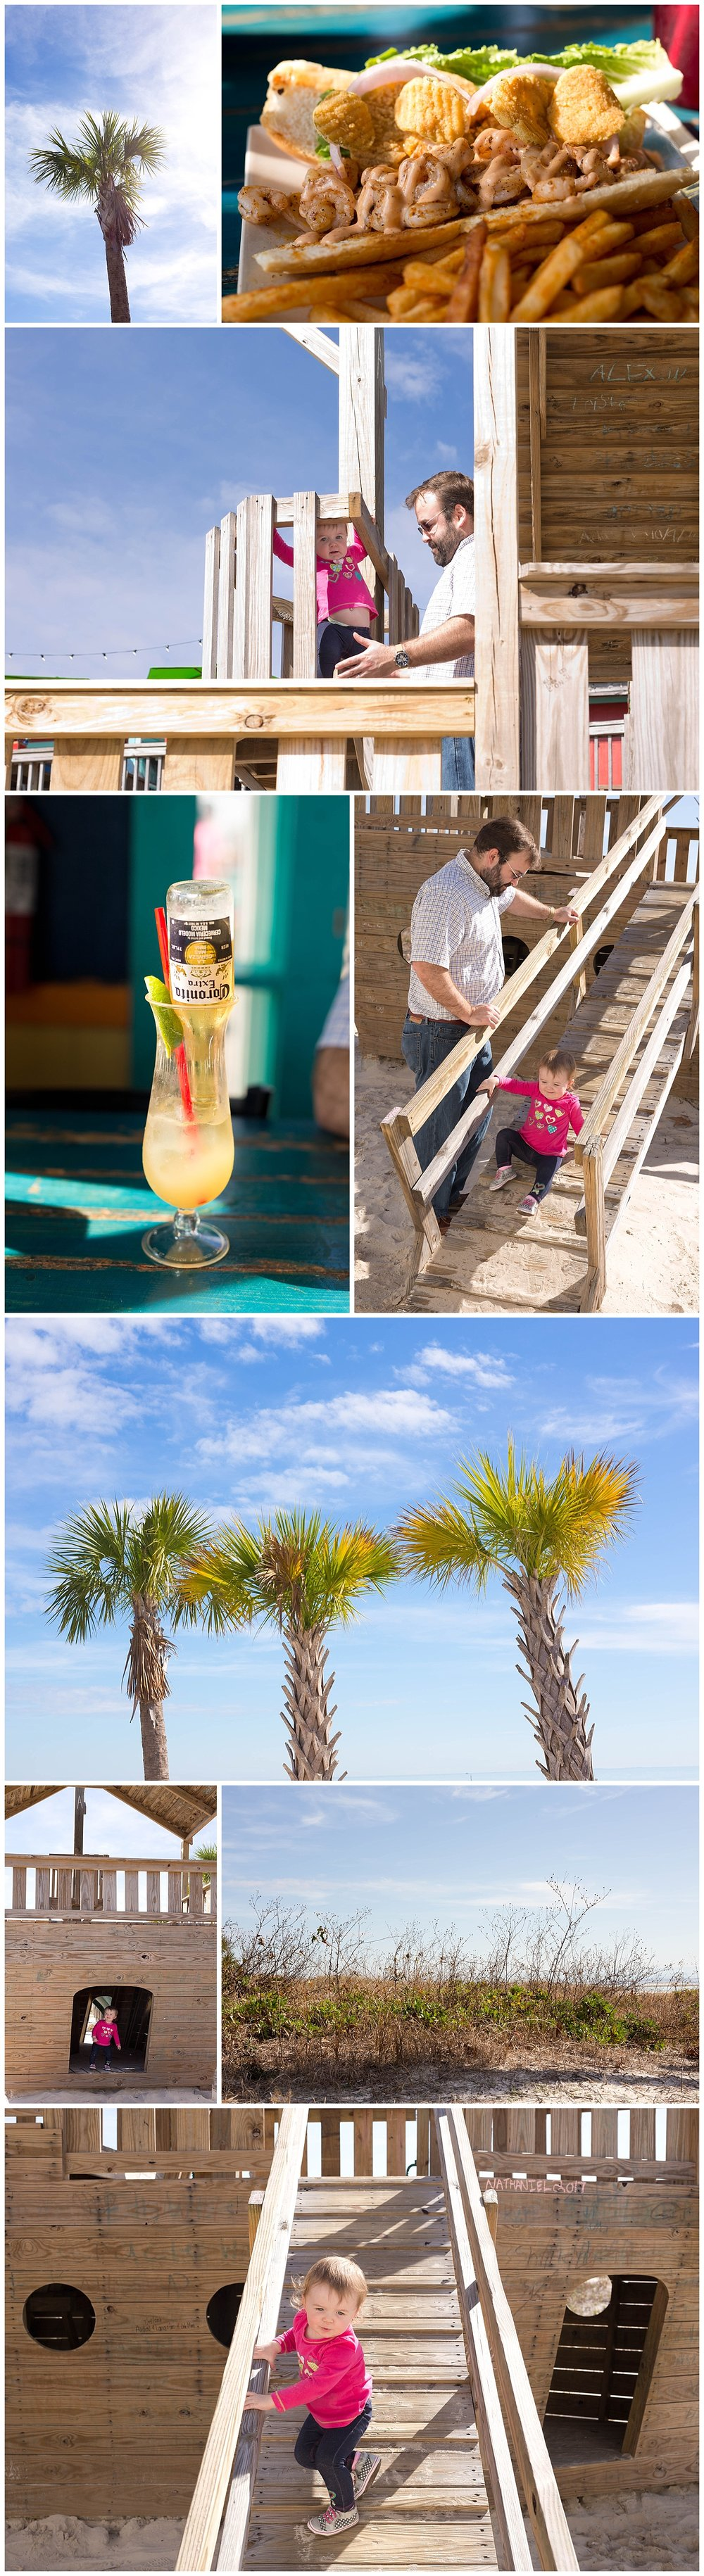 Shaggy's Biloxi - food, Coronarita, playground, palm trees